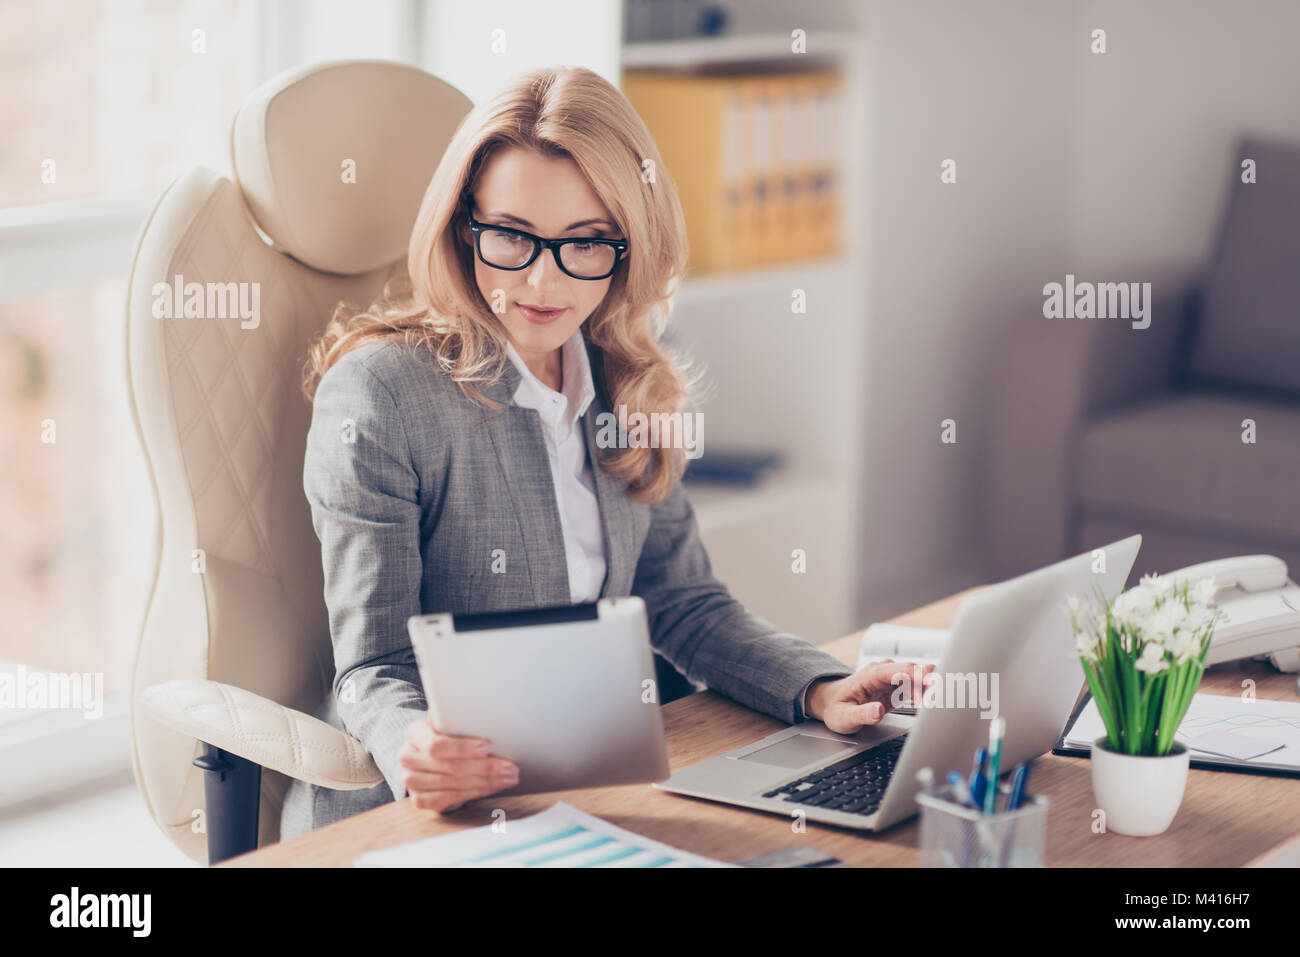 Pretty, charming, blonde woman using, browsing, typing, searching, expertising, working online on computer and tablet - Stock Image